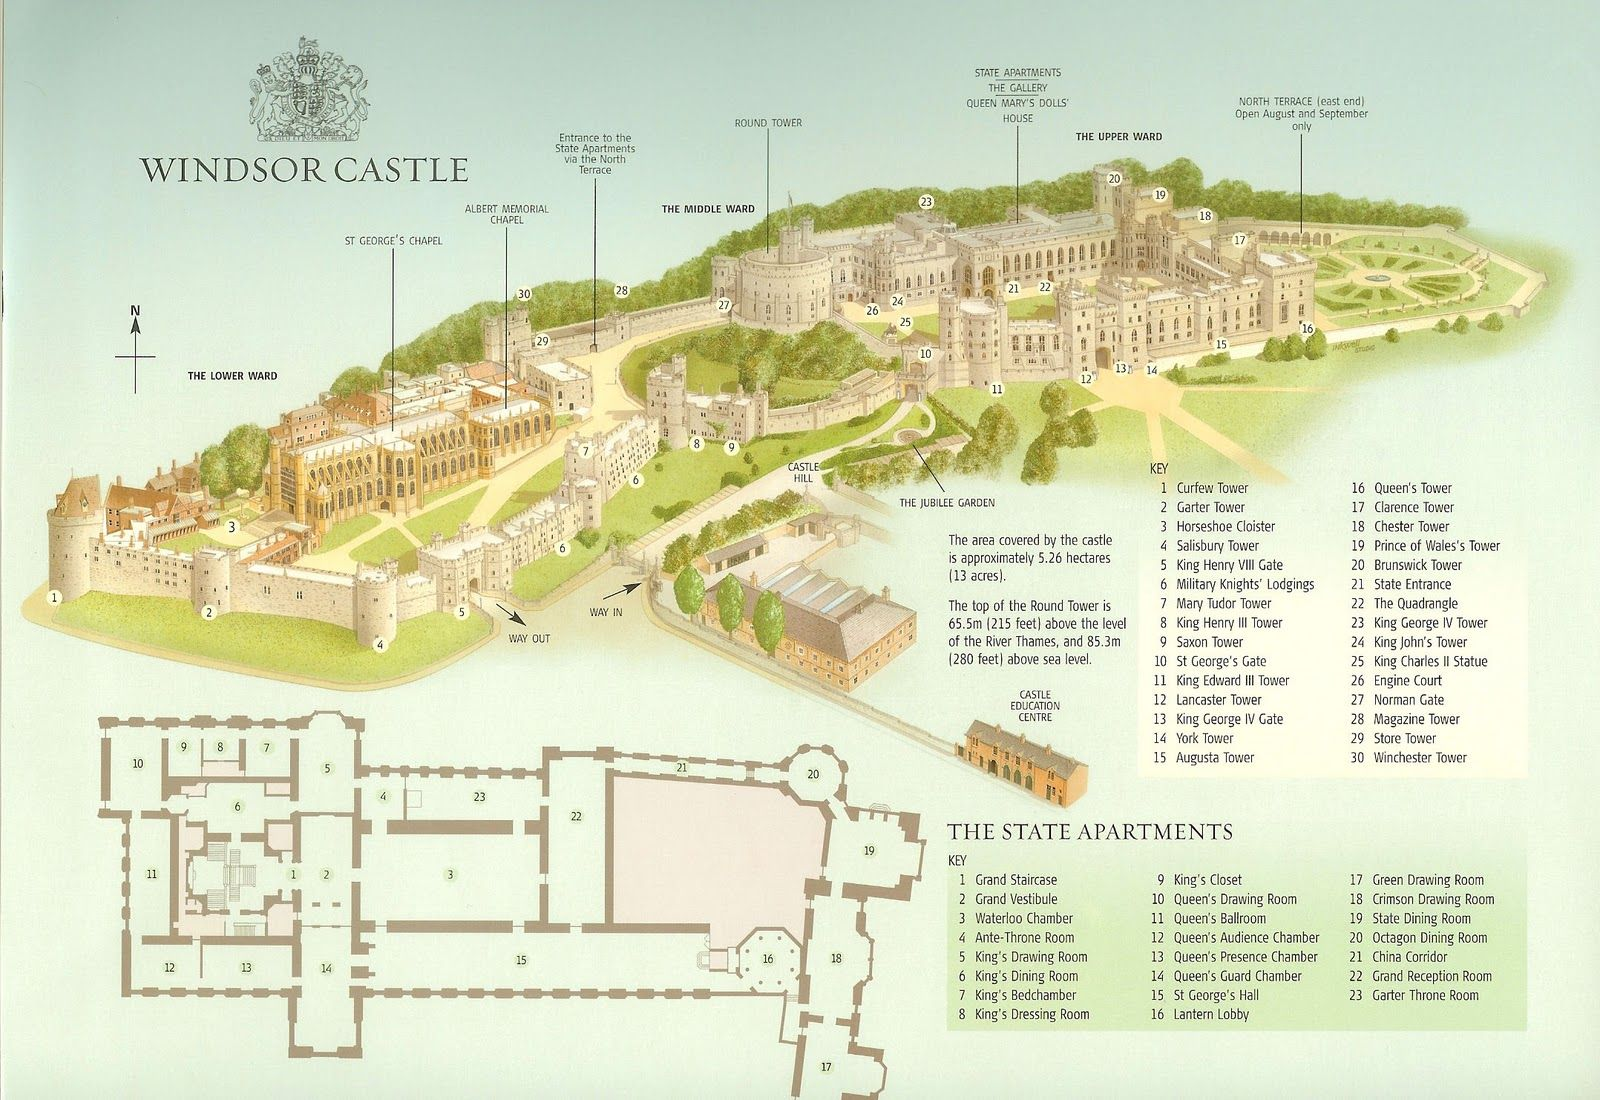 Windsor Castle Layout And Plan Will Eventually Sketch It Out And Frame It Along With Other English Castles For E Windsor Castle Map Castle Plans Castle Layout